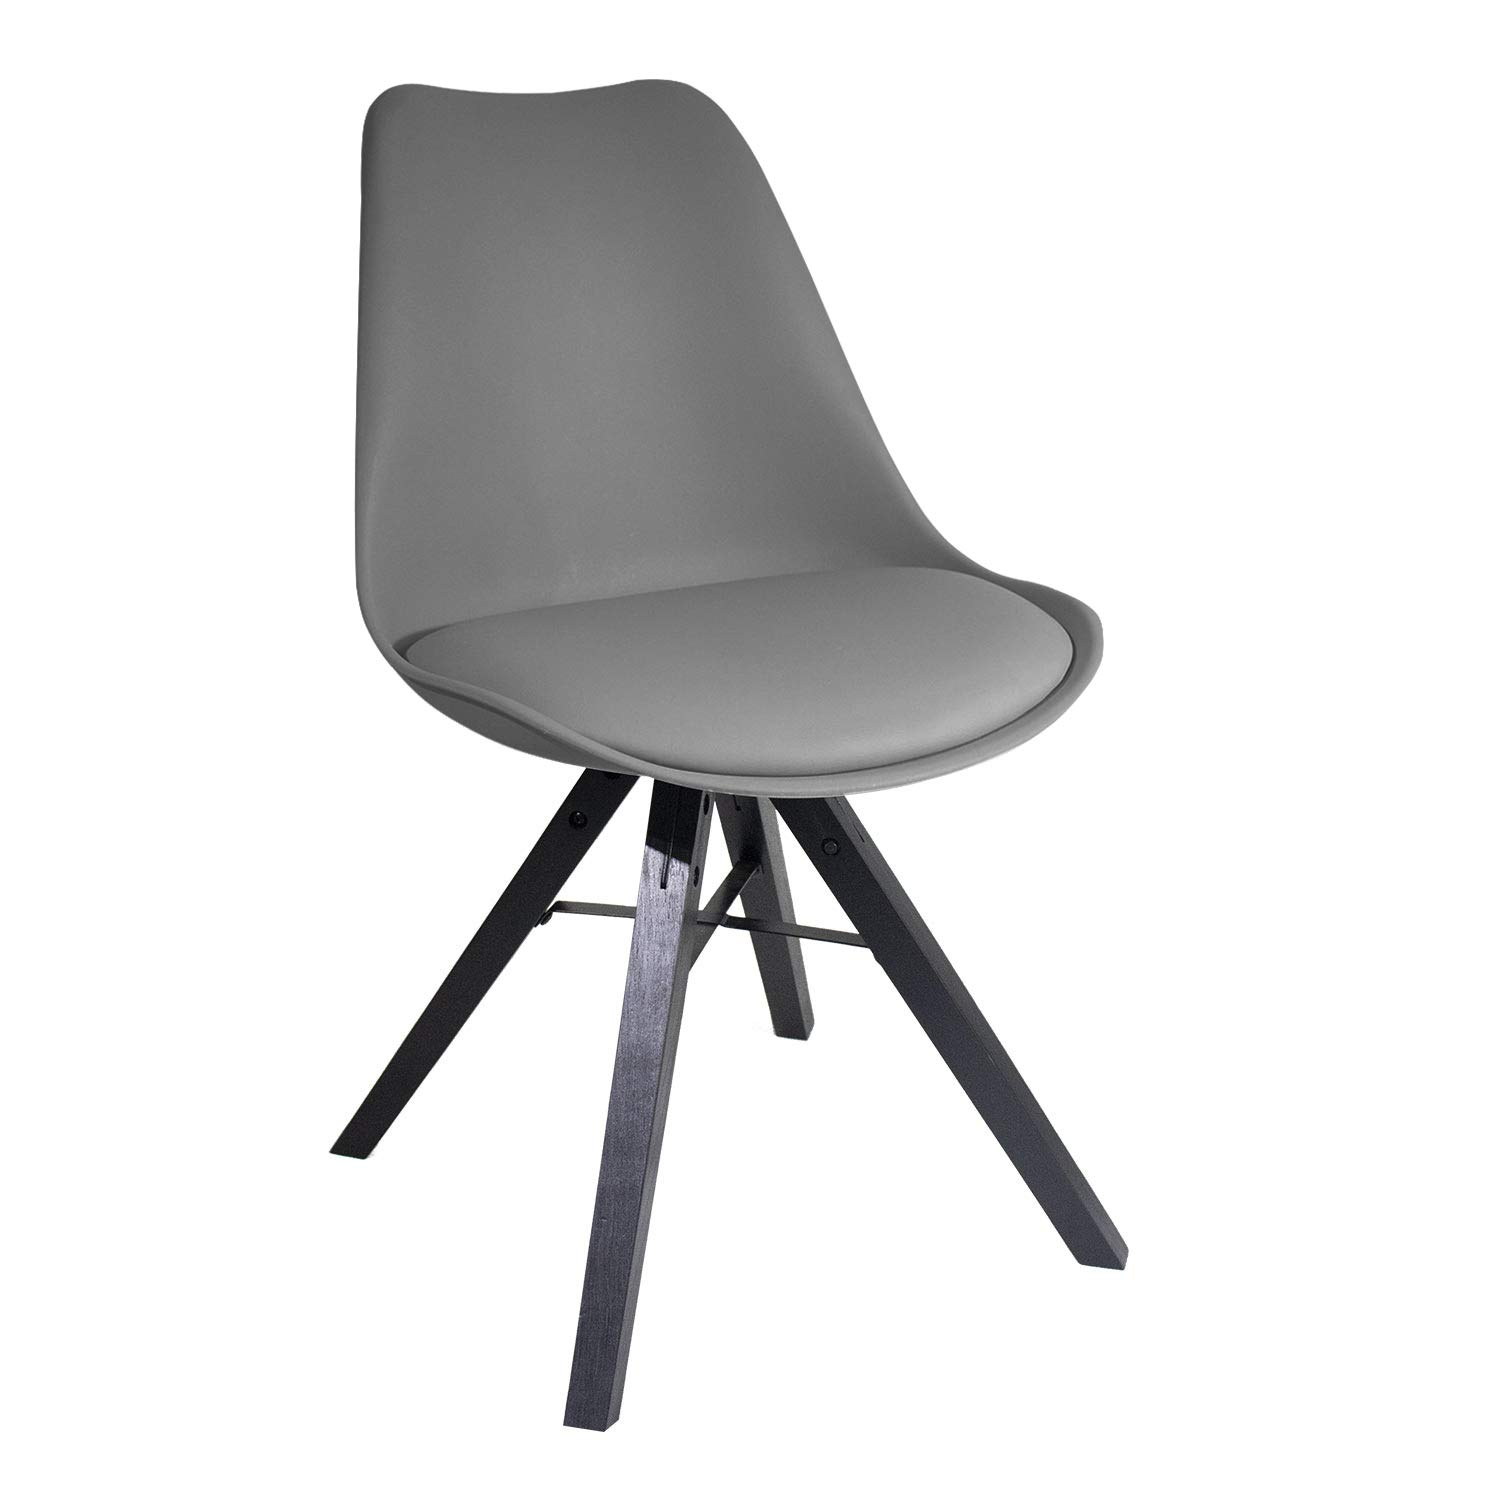 YUIKY Modern Dining Chair Padded Seat Natural Wood Legs Chair Office Canteen Home Grey (1chair)